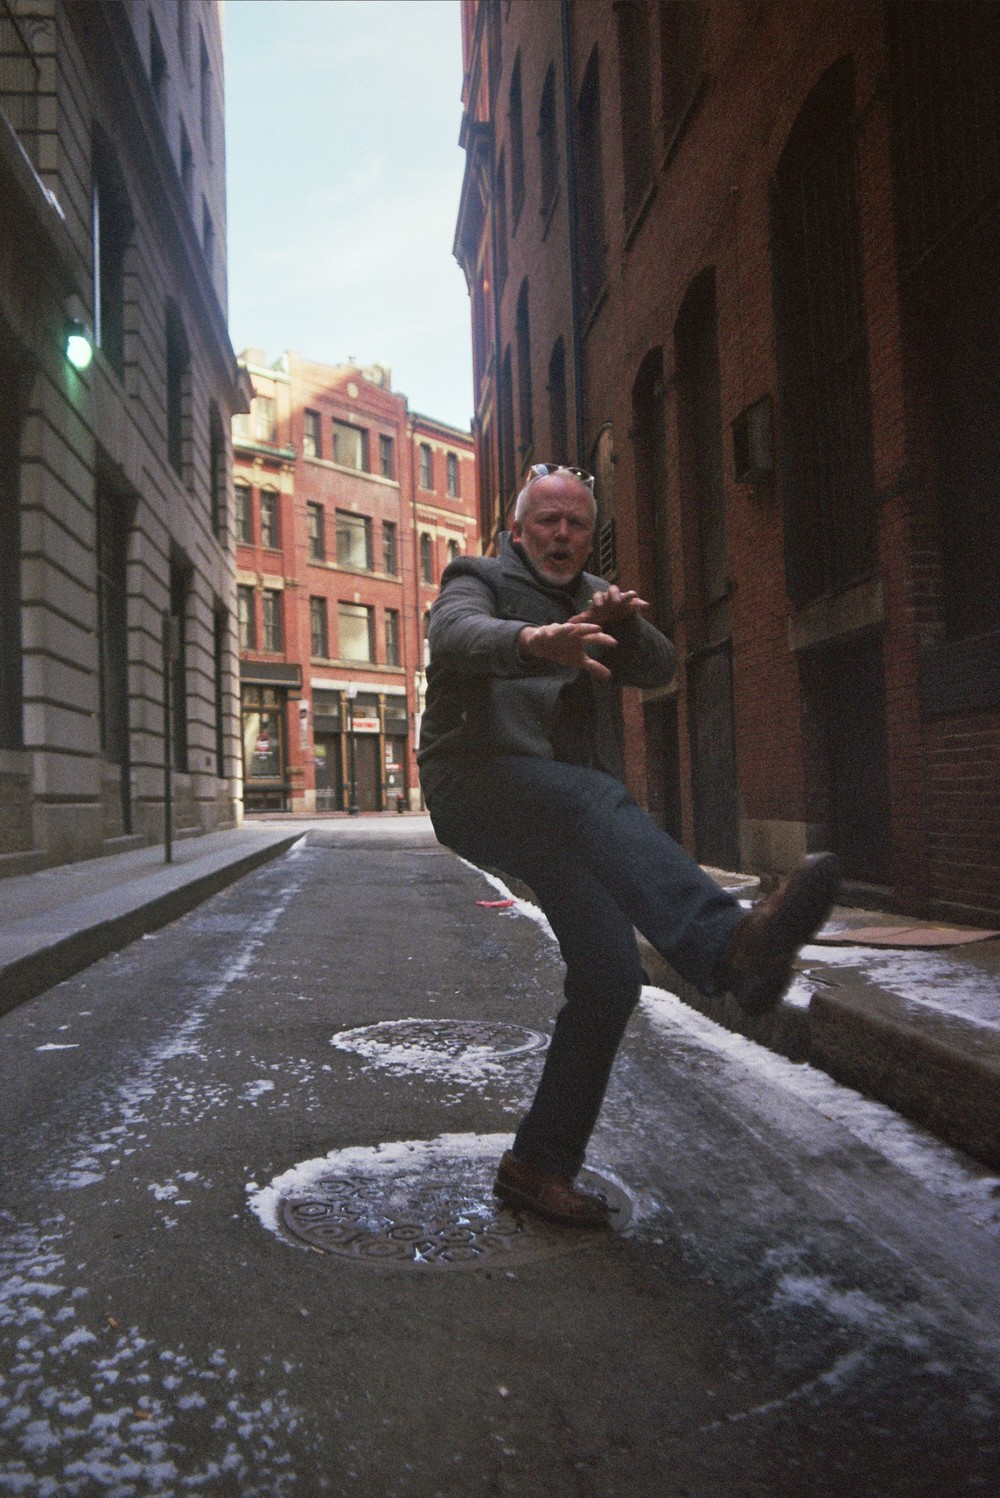 This is Greg. He is awesome. While on a shoot in Boston he gave us his best Kung Fu fighting stance in this epic ally.